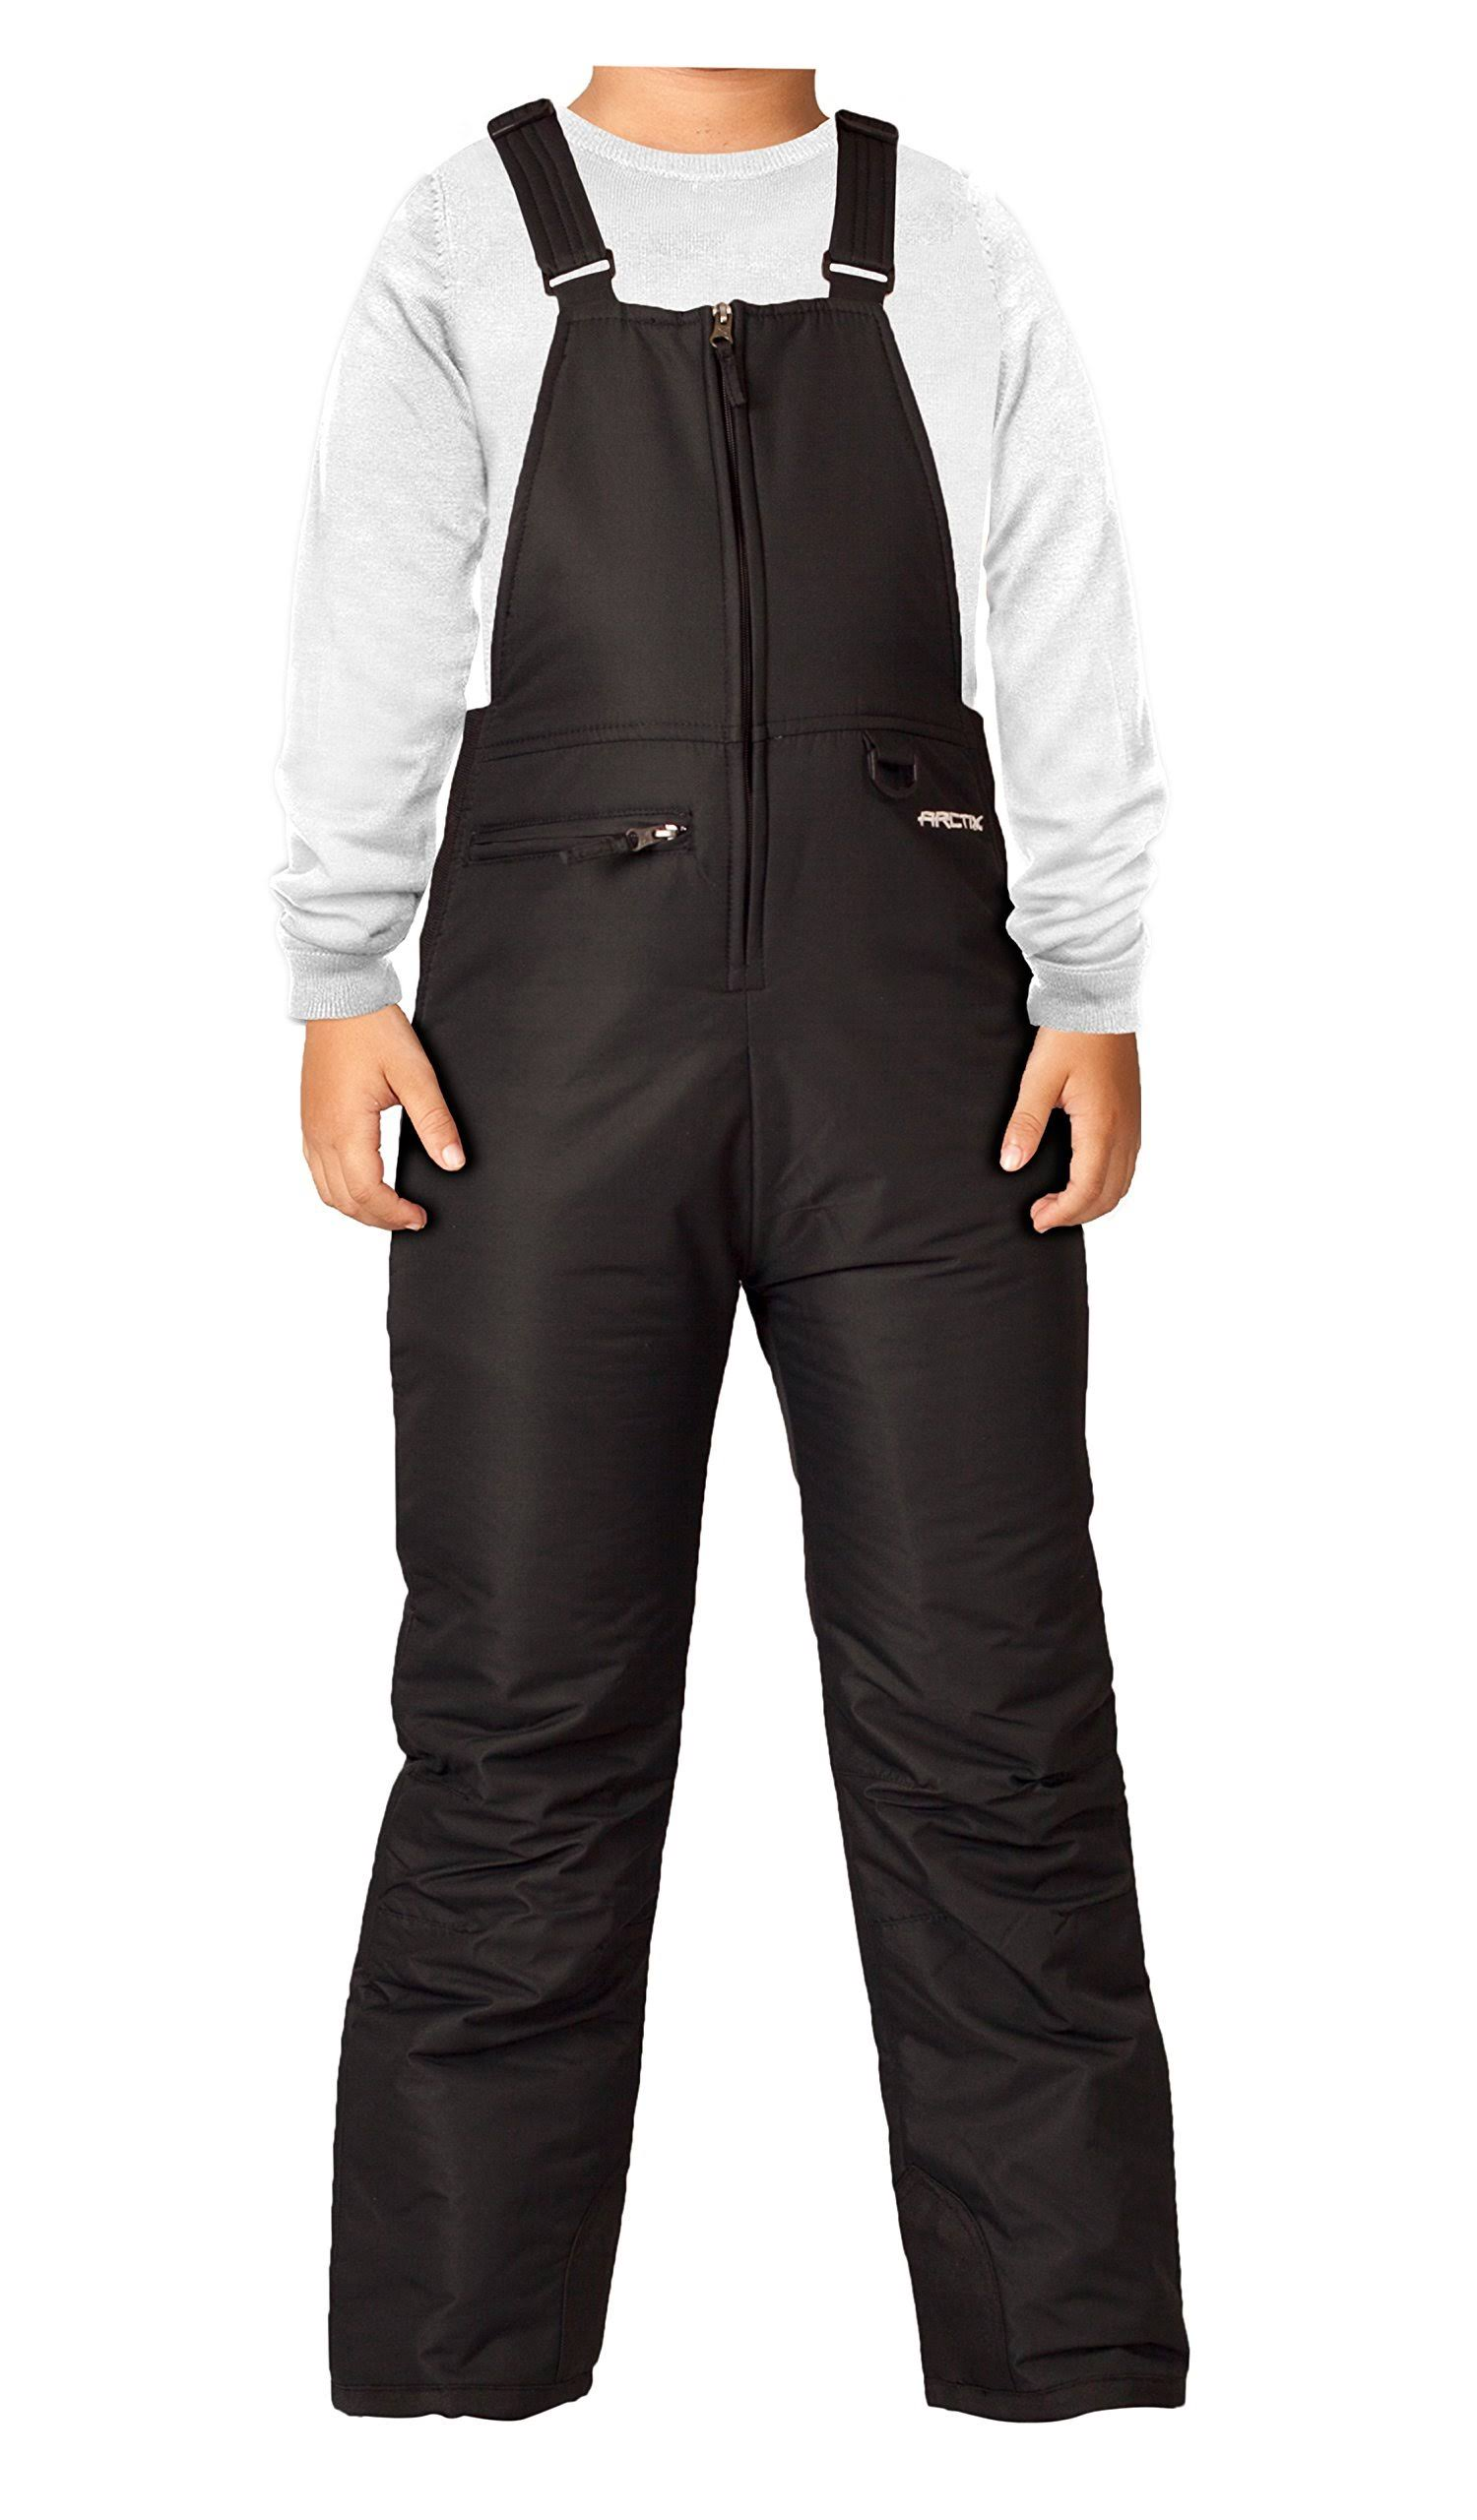 Arctix Youth Classic Overalls Snow Bib - Large